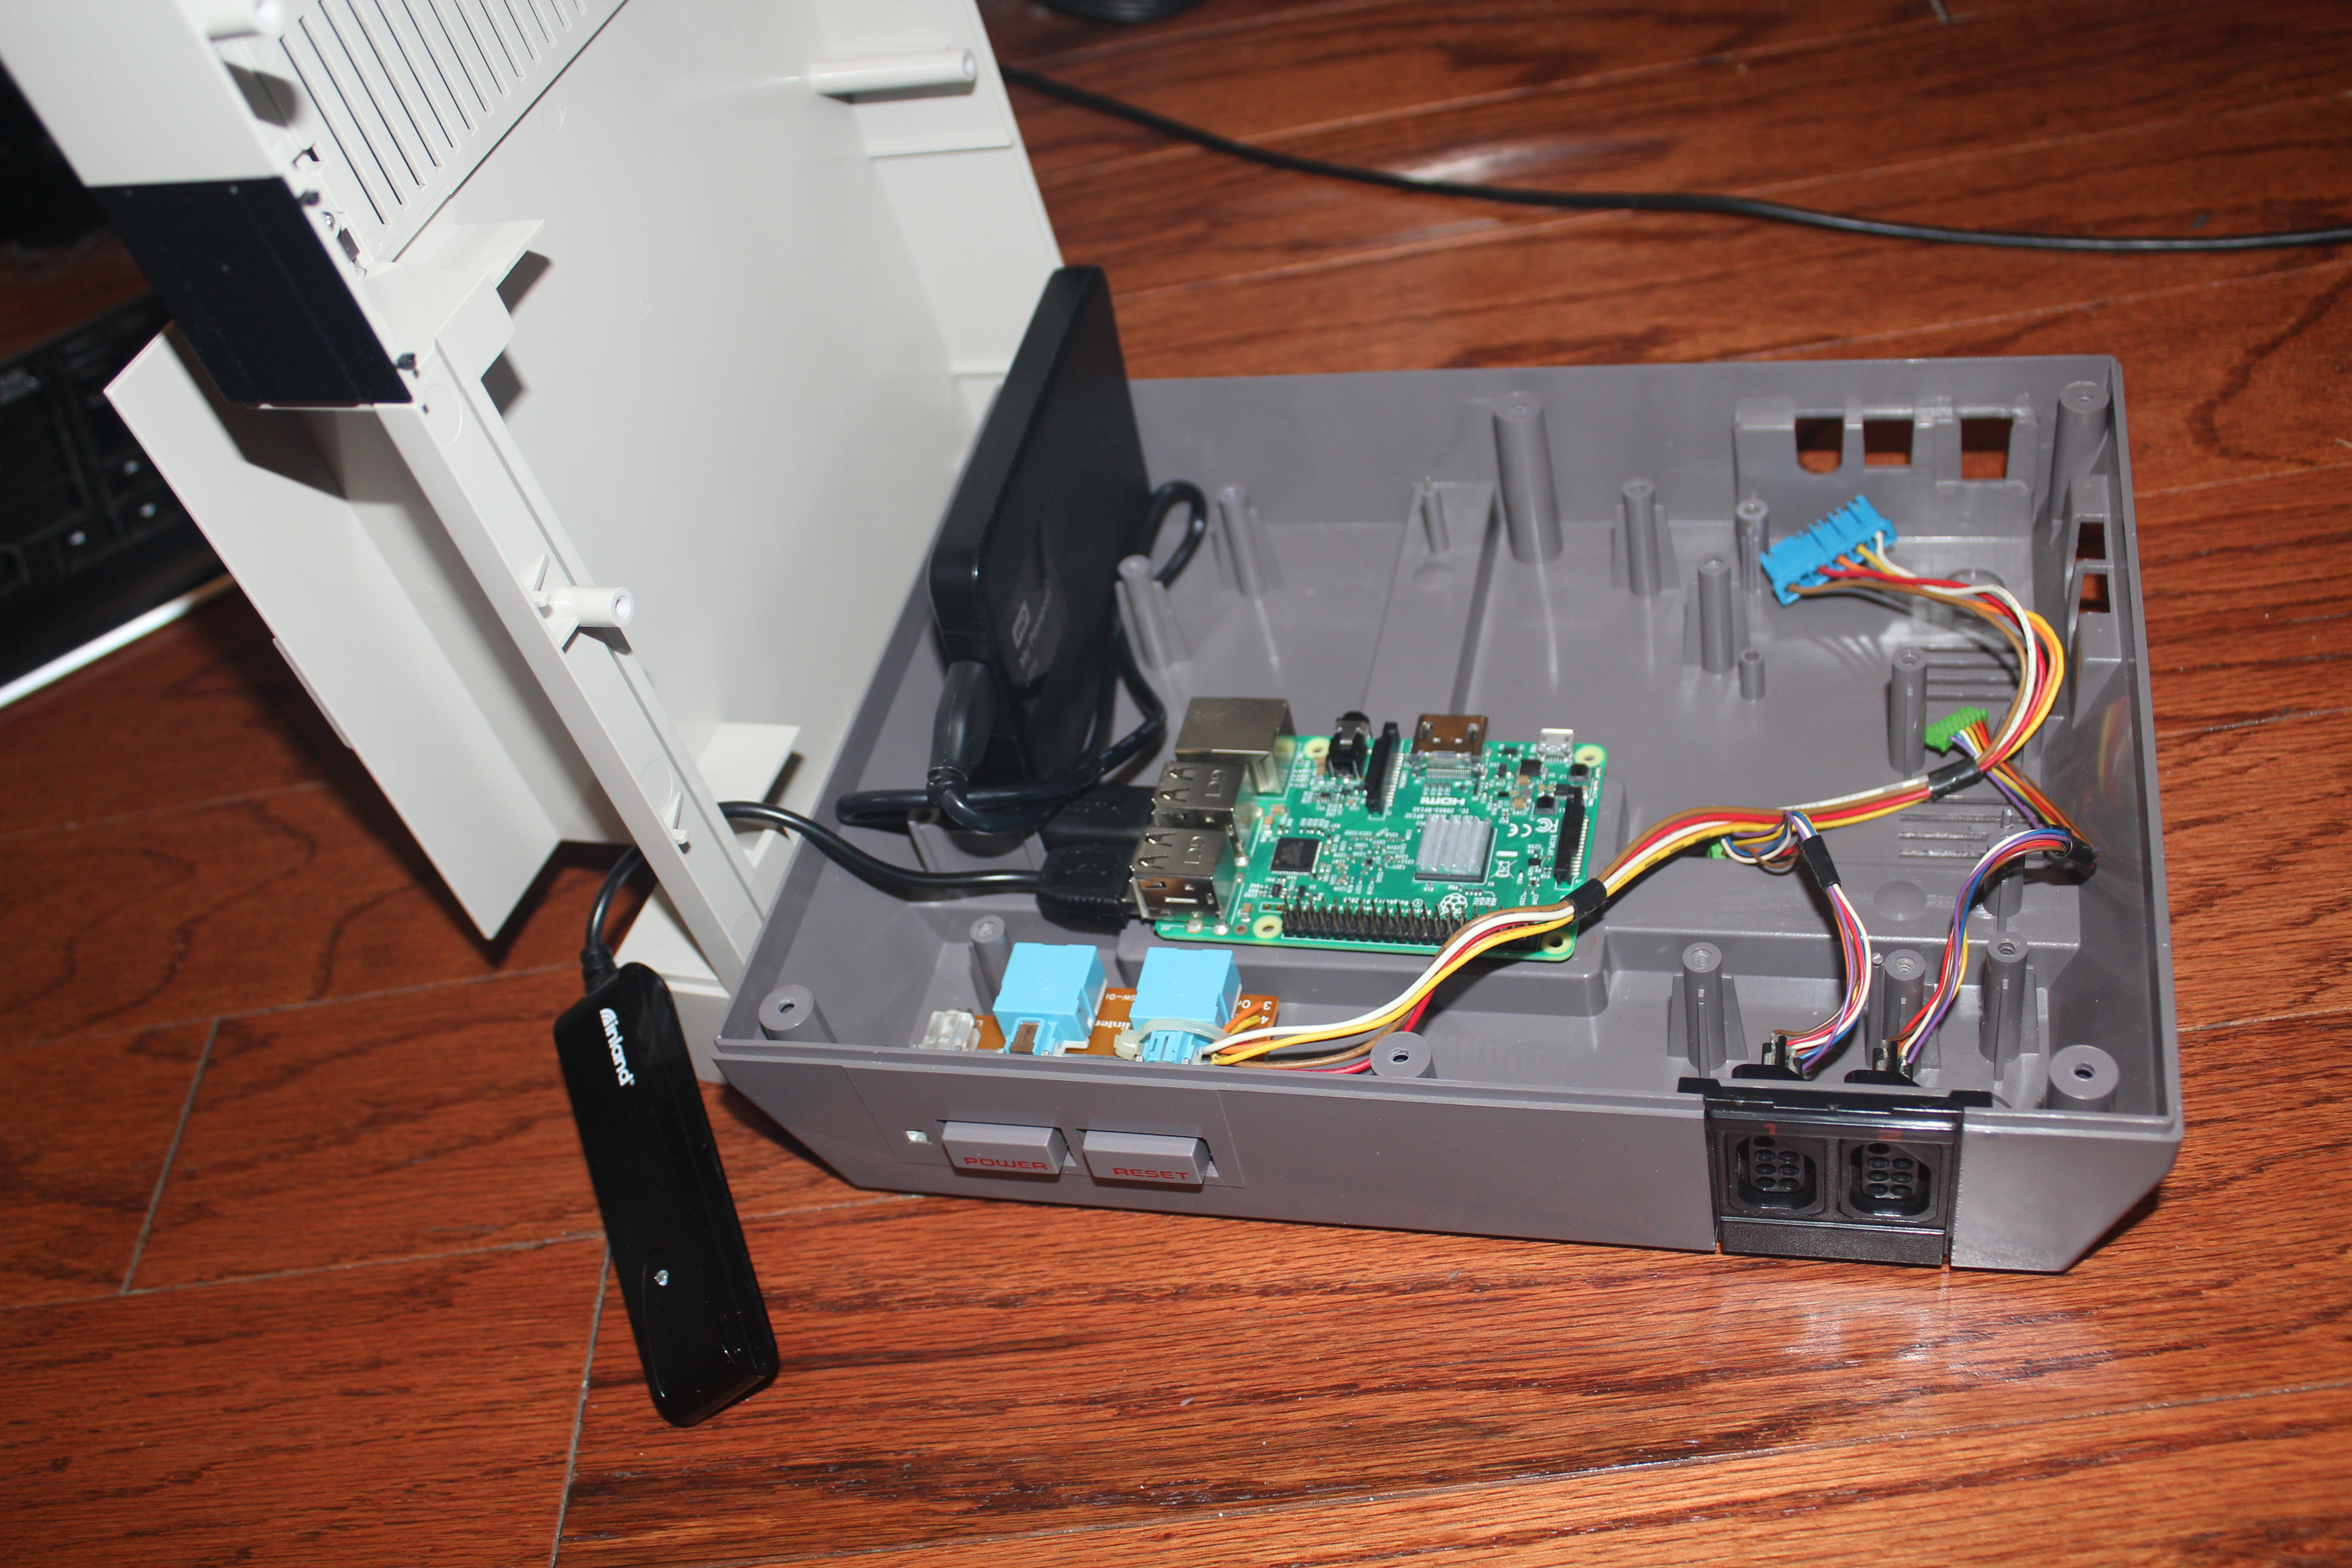 Hans Nintendopi Project Gamer Rigs Spesoft Forums Usb On Off Power Switch Circuit By Mausberry Circuits Its Directly Over The Removable Plate For Expansion Port Rather Than Above It This Brings Pi Closer To Front Of Case An Area Where